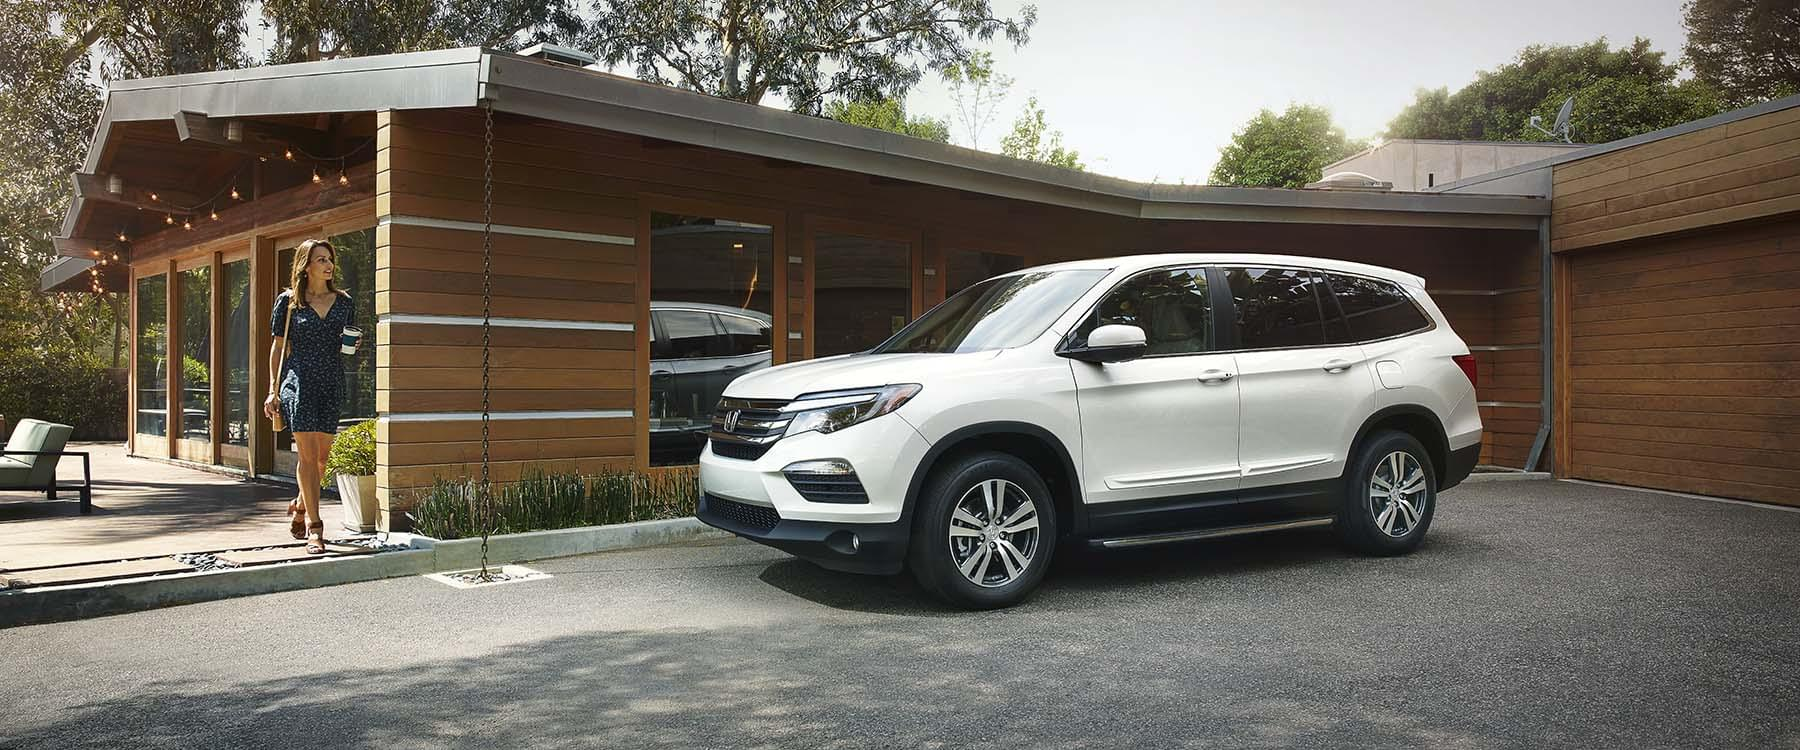 Interior features of the 2017 honda pilot for 2017 honda pilot features